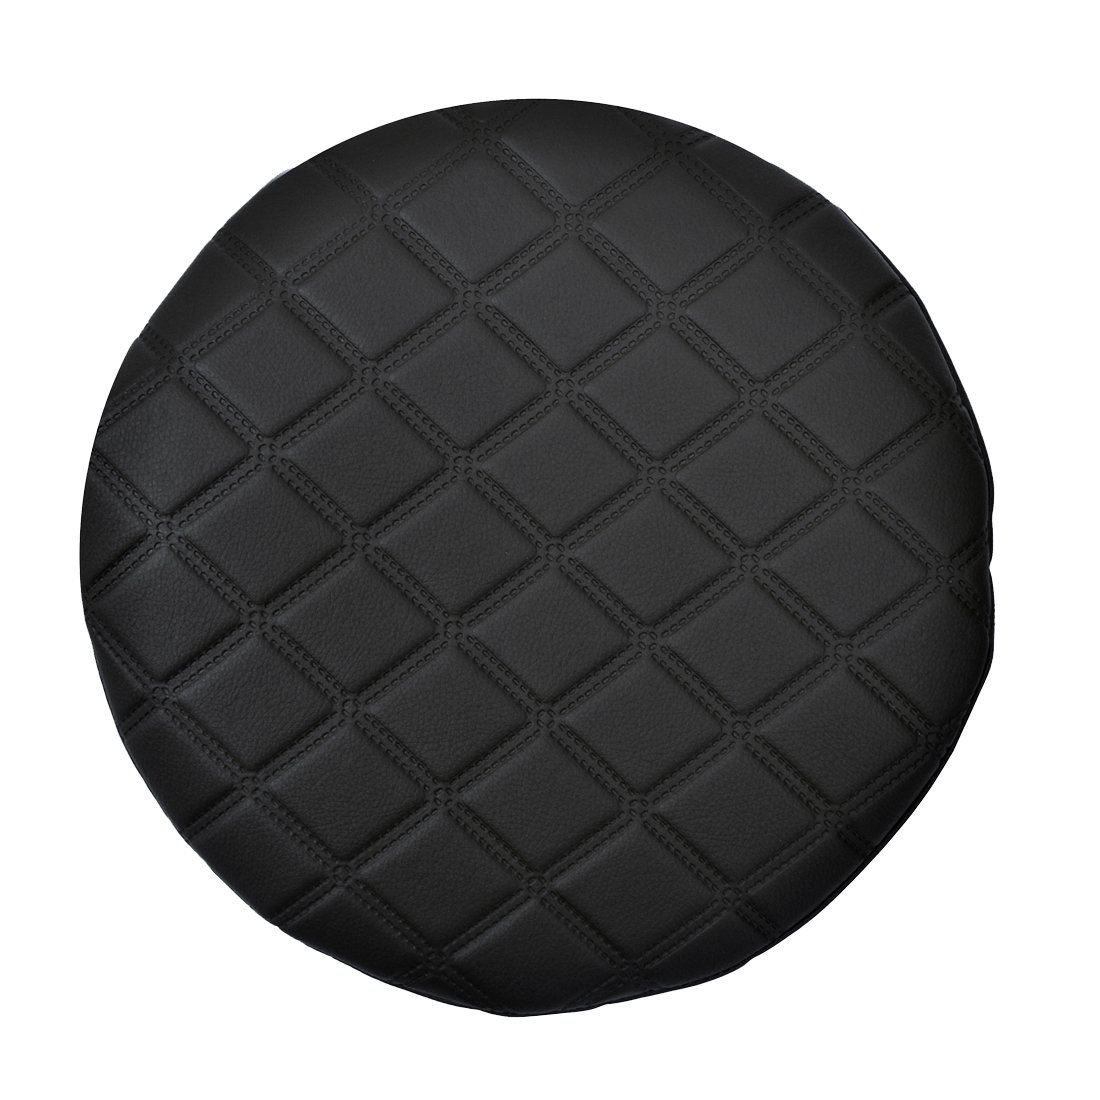 Enerhu Round Bar Stool Cover Faux Leather Barstool Cover Thick Black L(11.8inch)